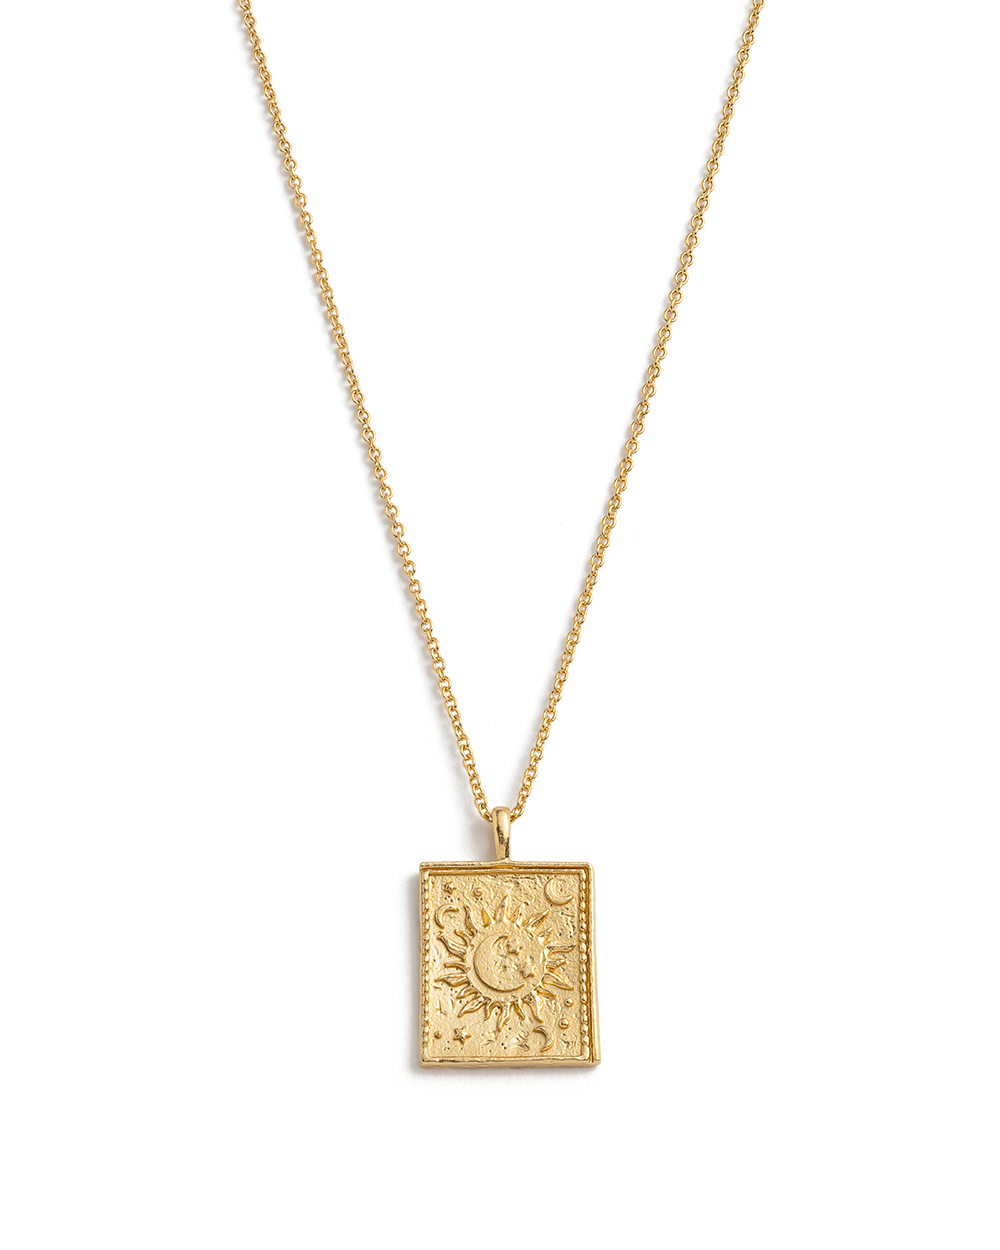 DUSK COIN NECKLACE (18K-GOLD-PLATED)